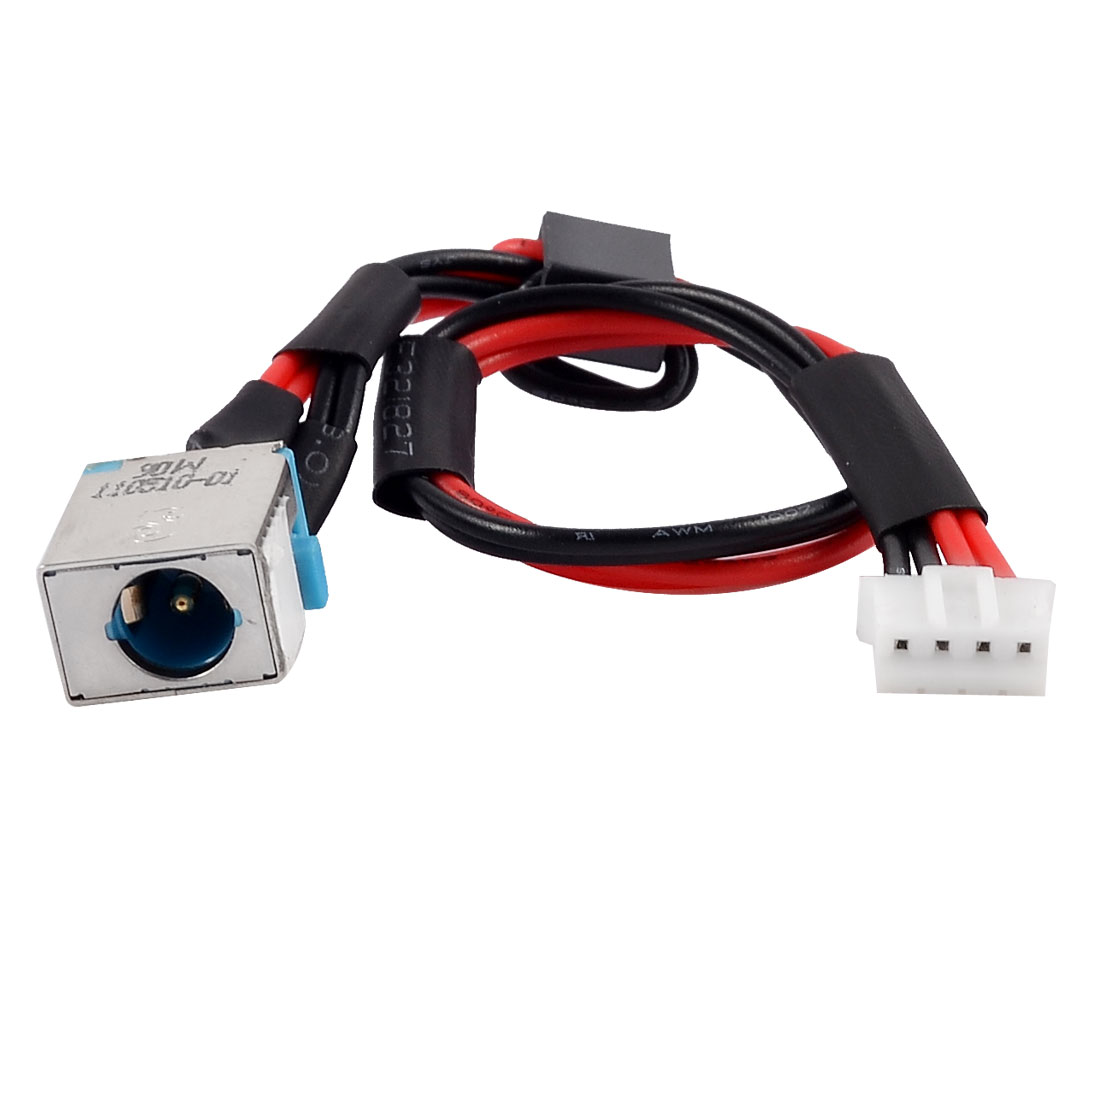 PJ253 DC Power Jack w 4 Pins Cable for Notebook Laptops